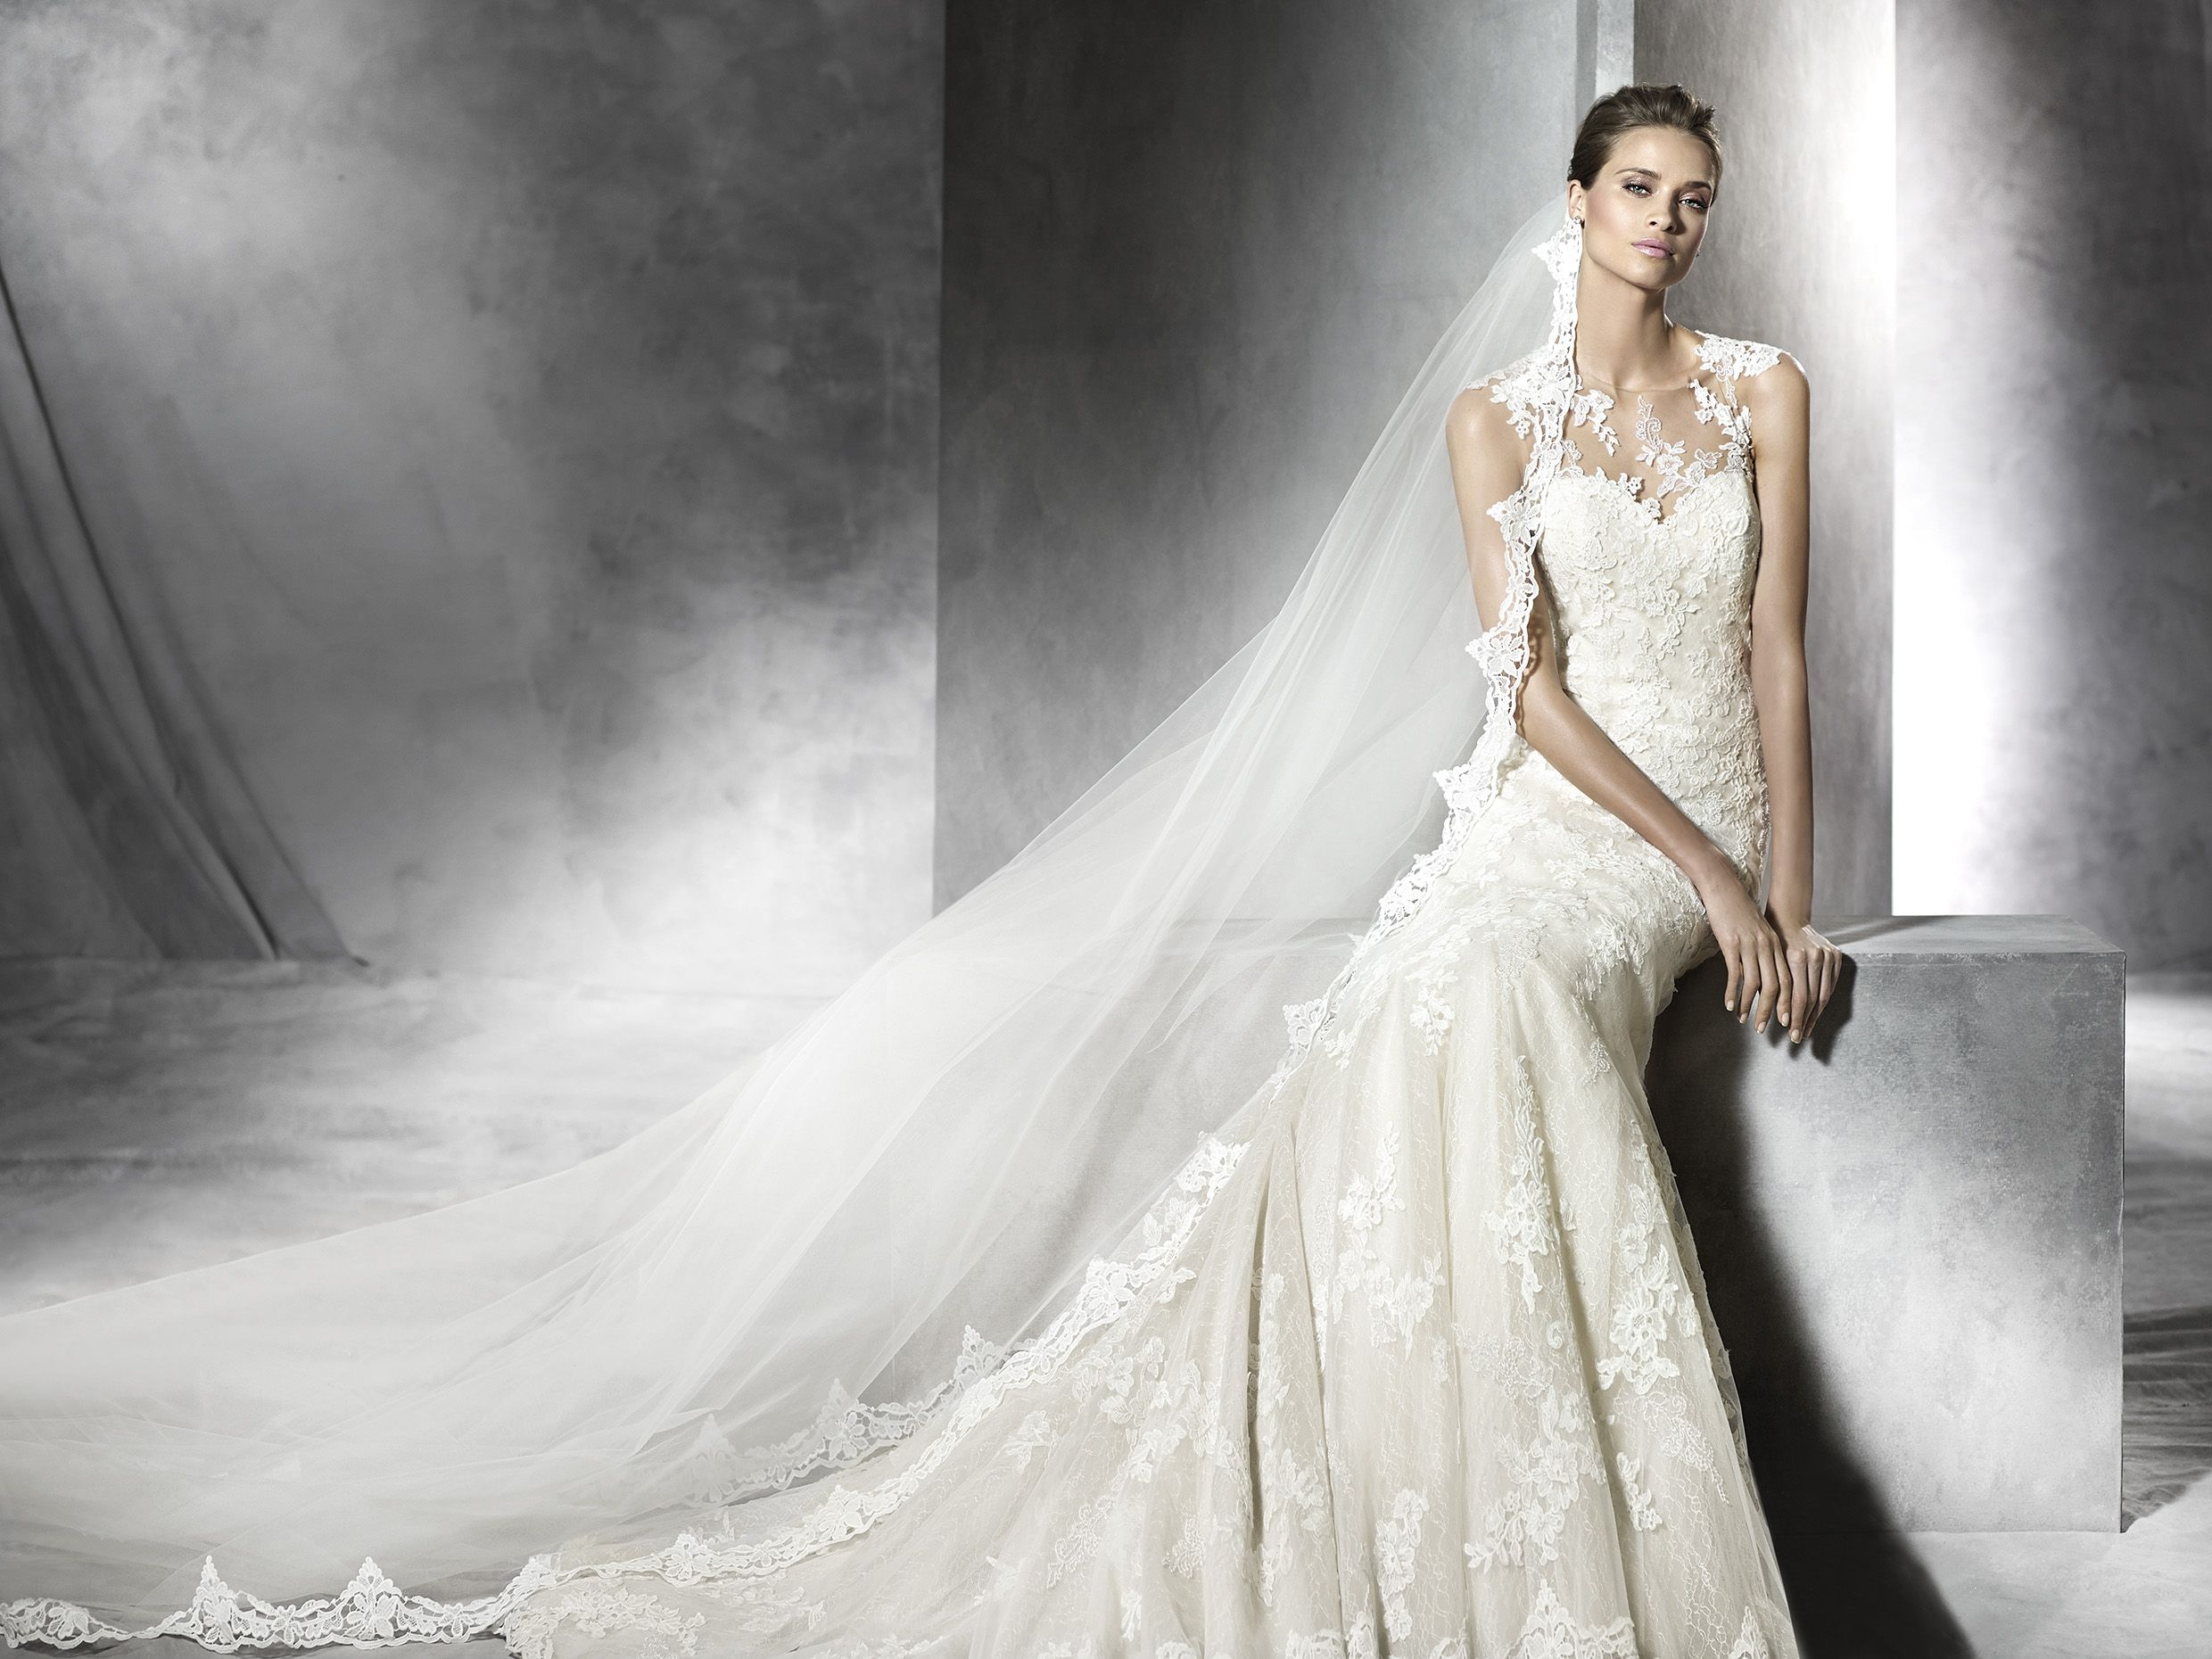 Lace wedding dress tulle november 2018 Pronovias Pladie available from November  sample size